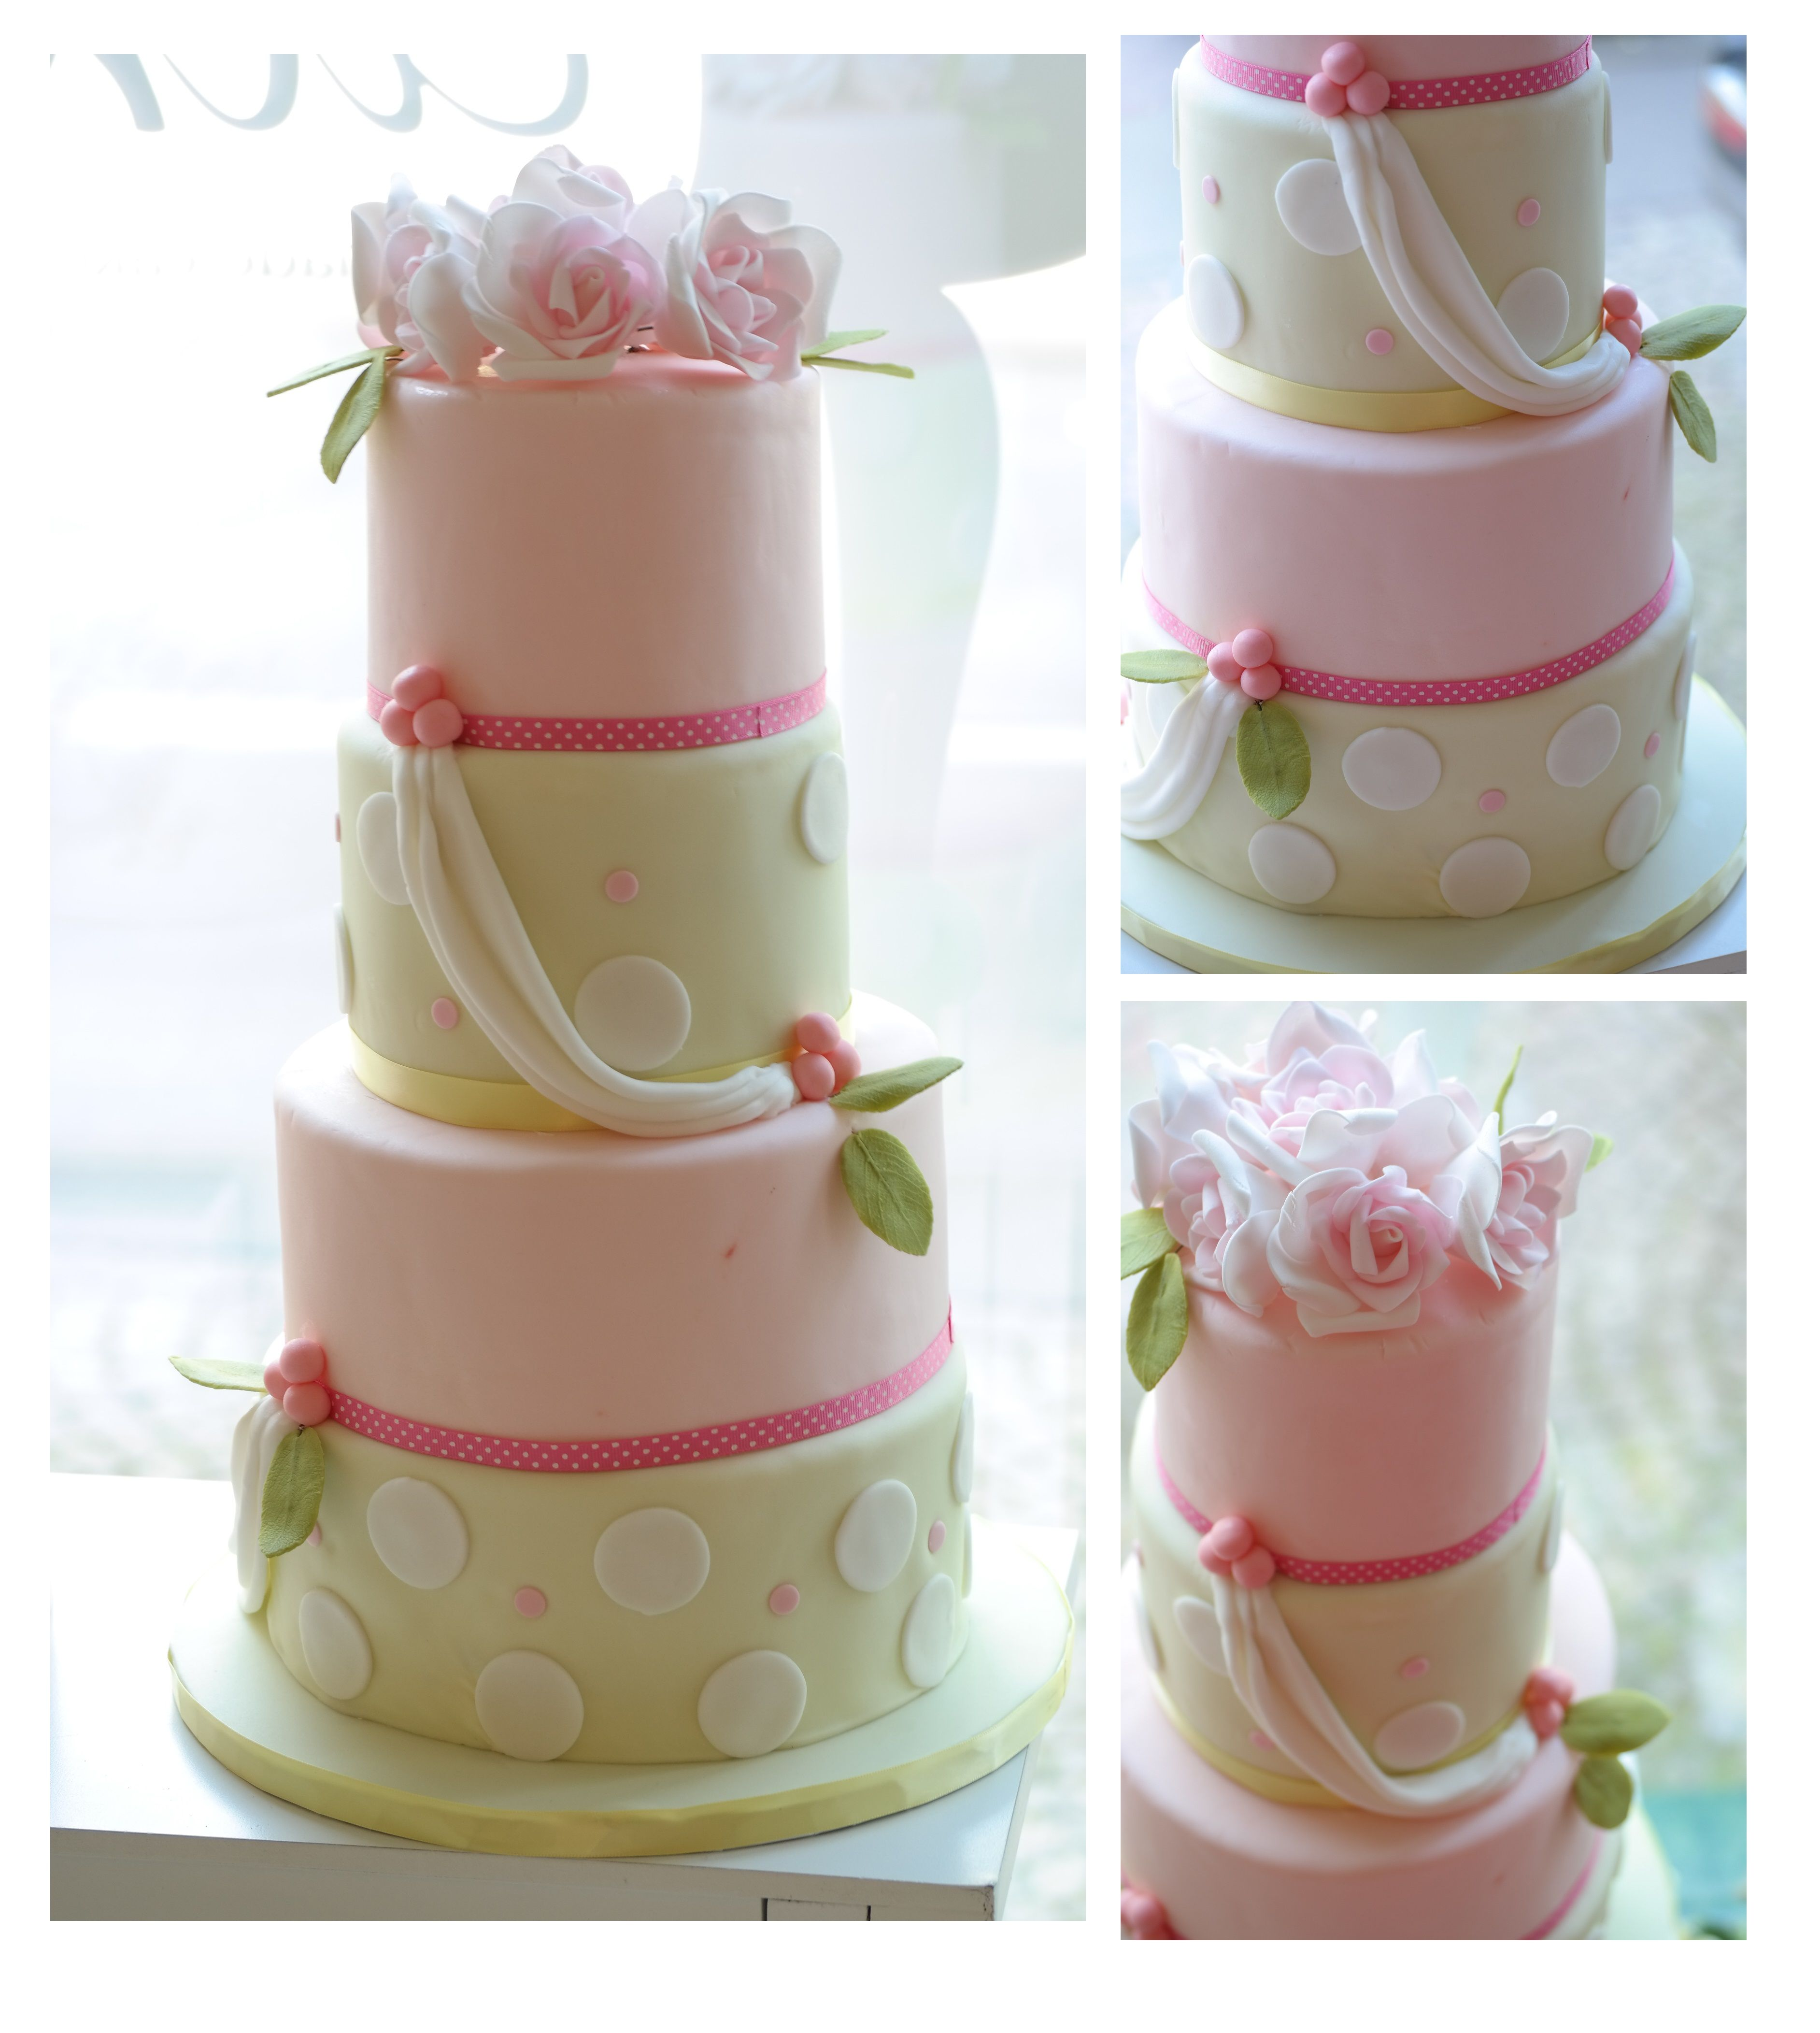 A lovely pastel 4 tier for the Spring from The Cake Lady Zurich